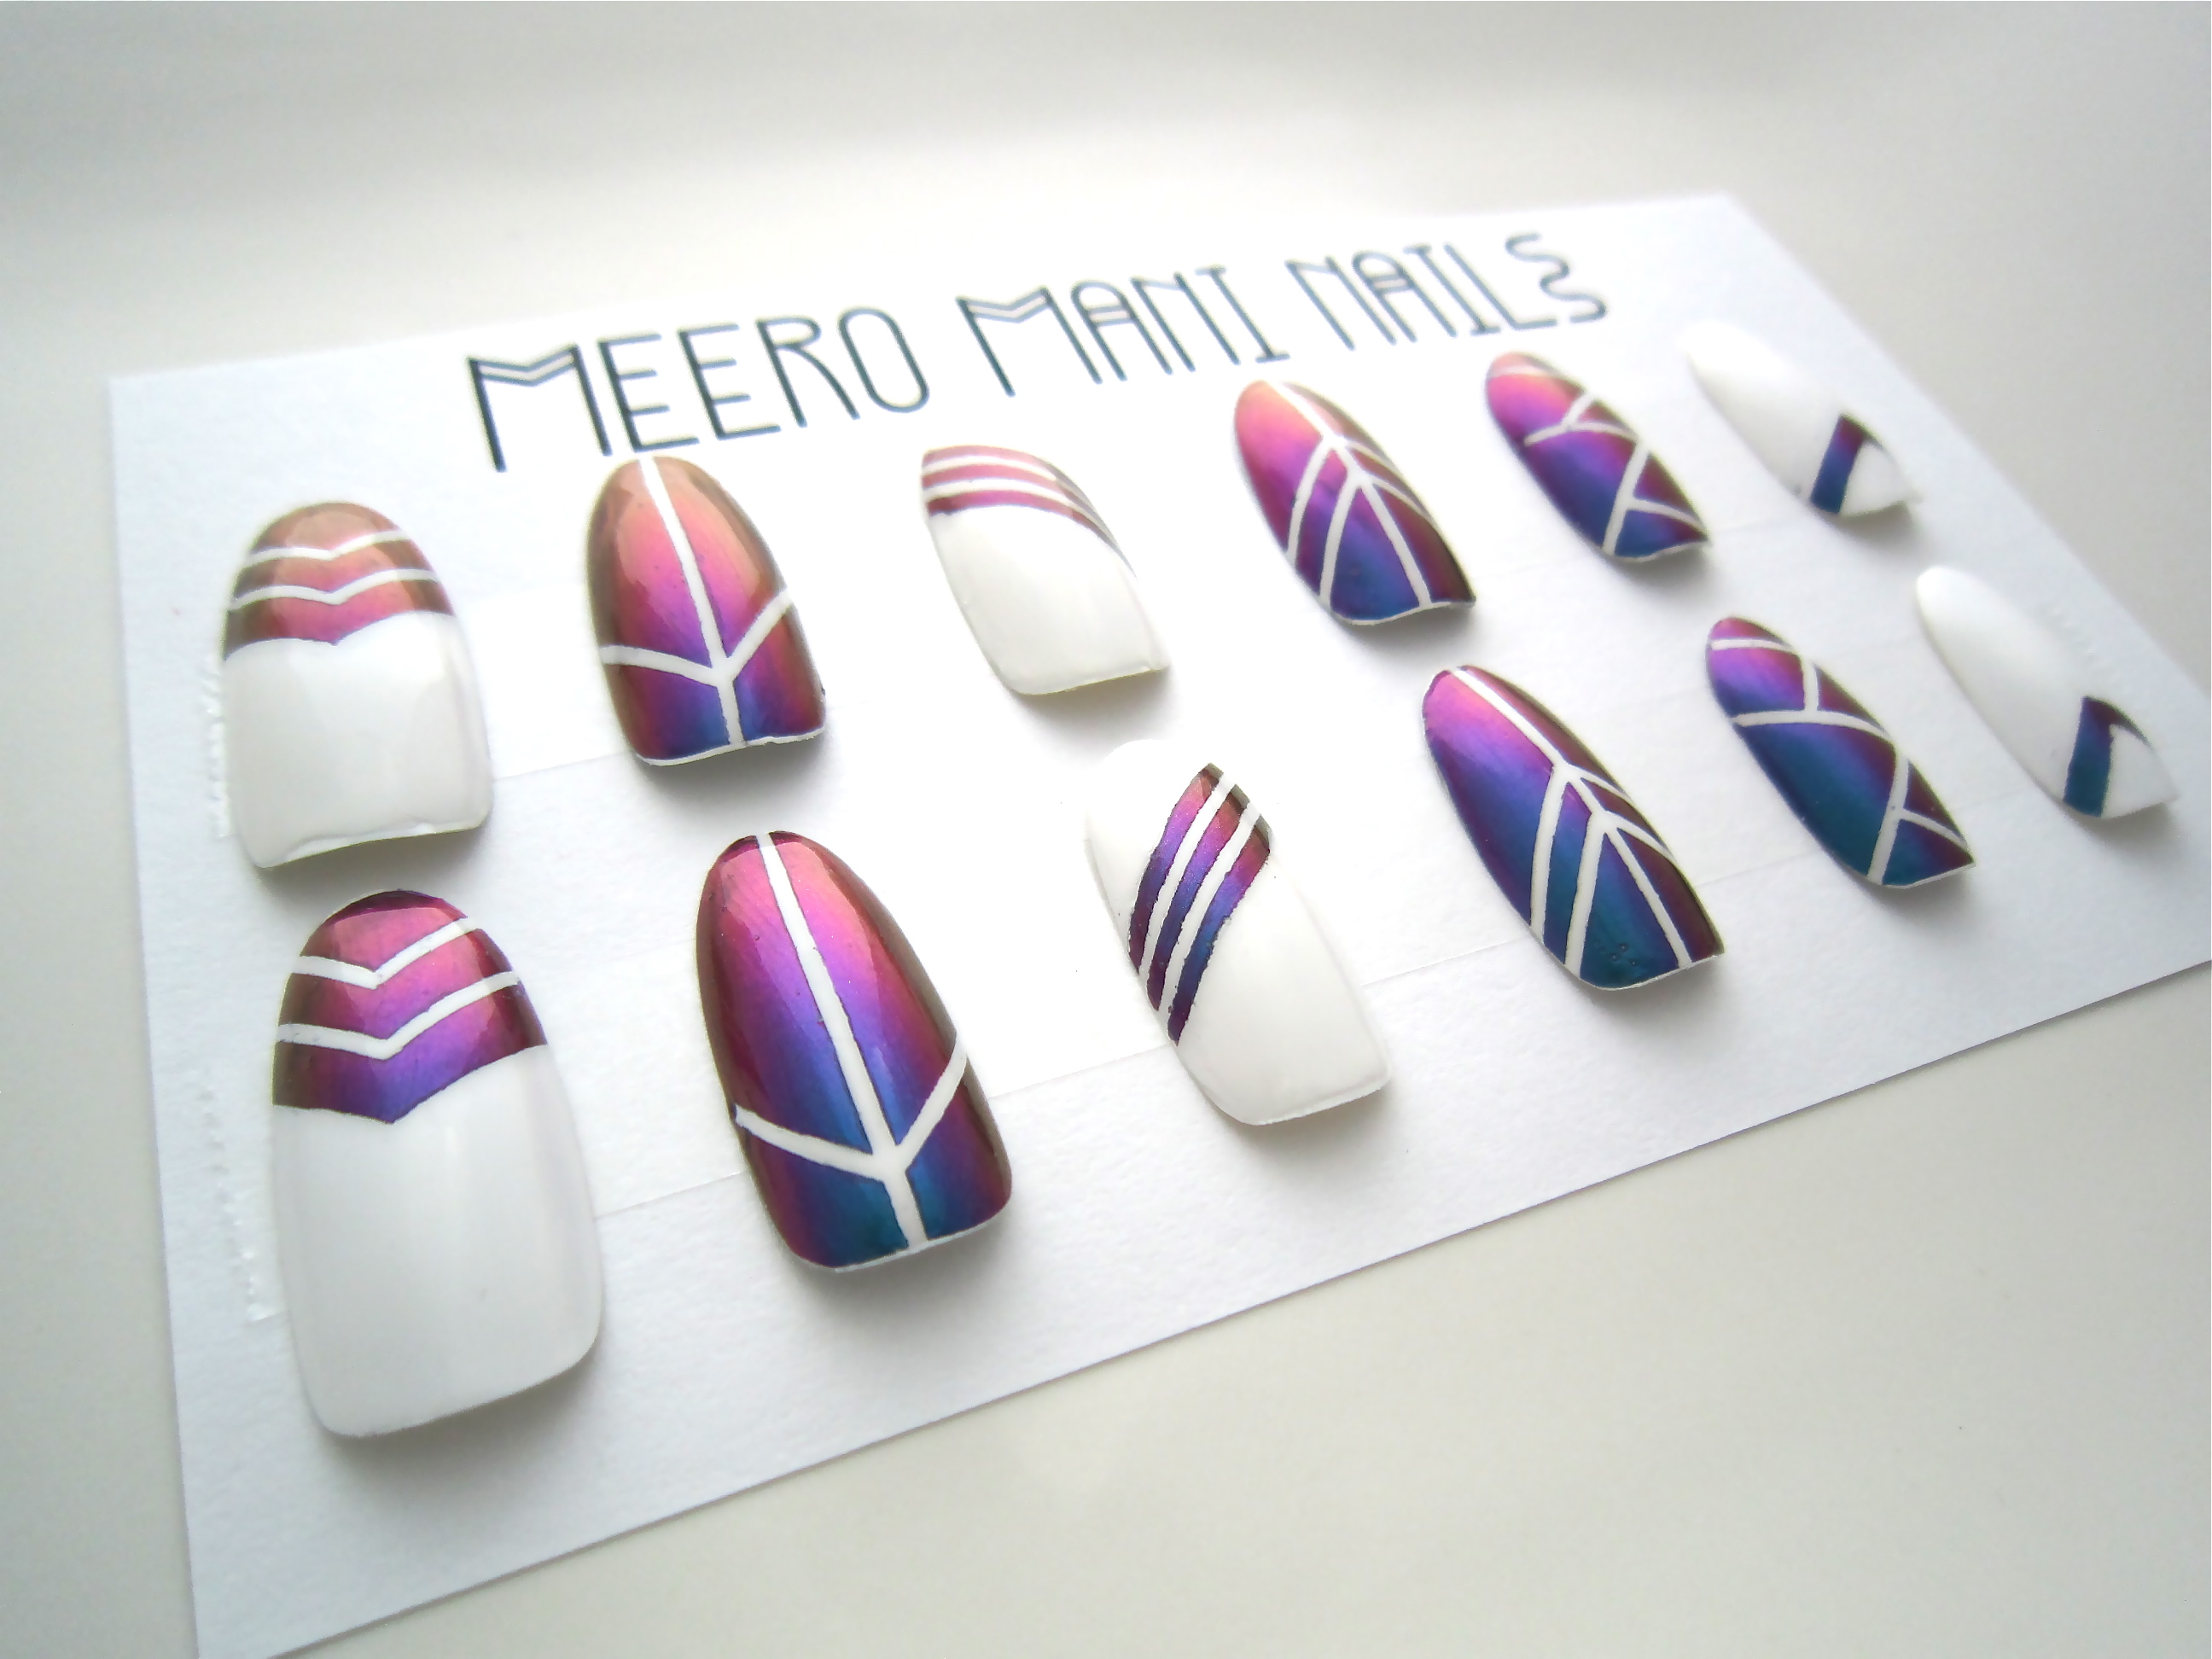 Beetle Wing Stripes Reusable Press On Nails